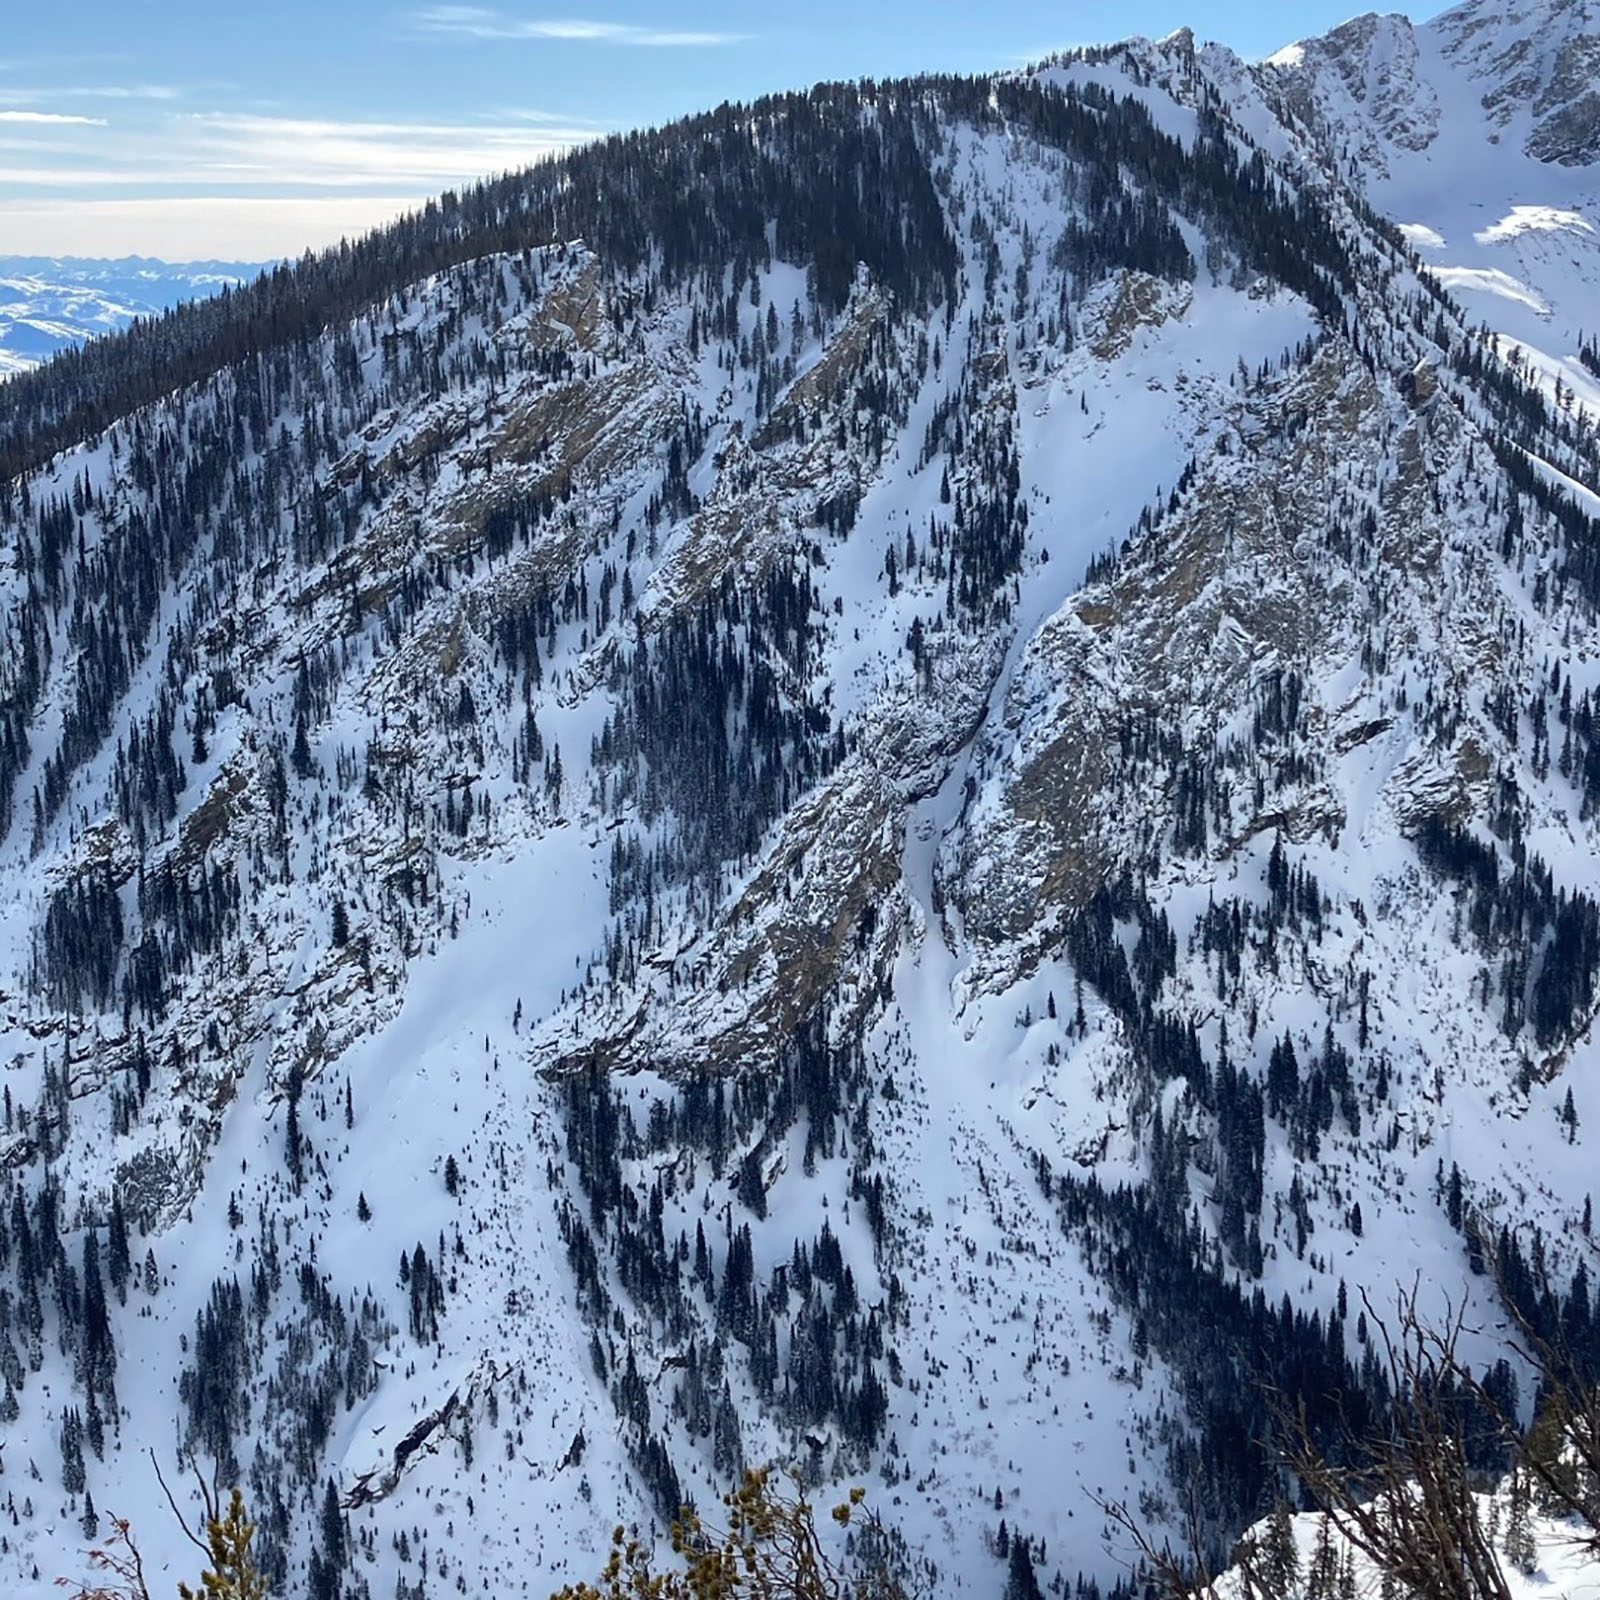 Avalanche kills skier in Wyoming national park